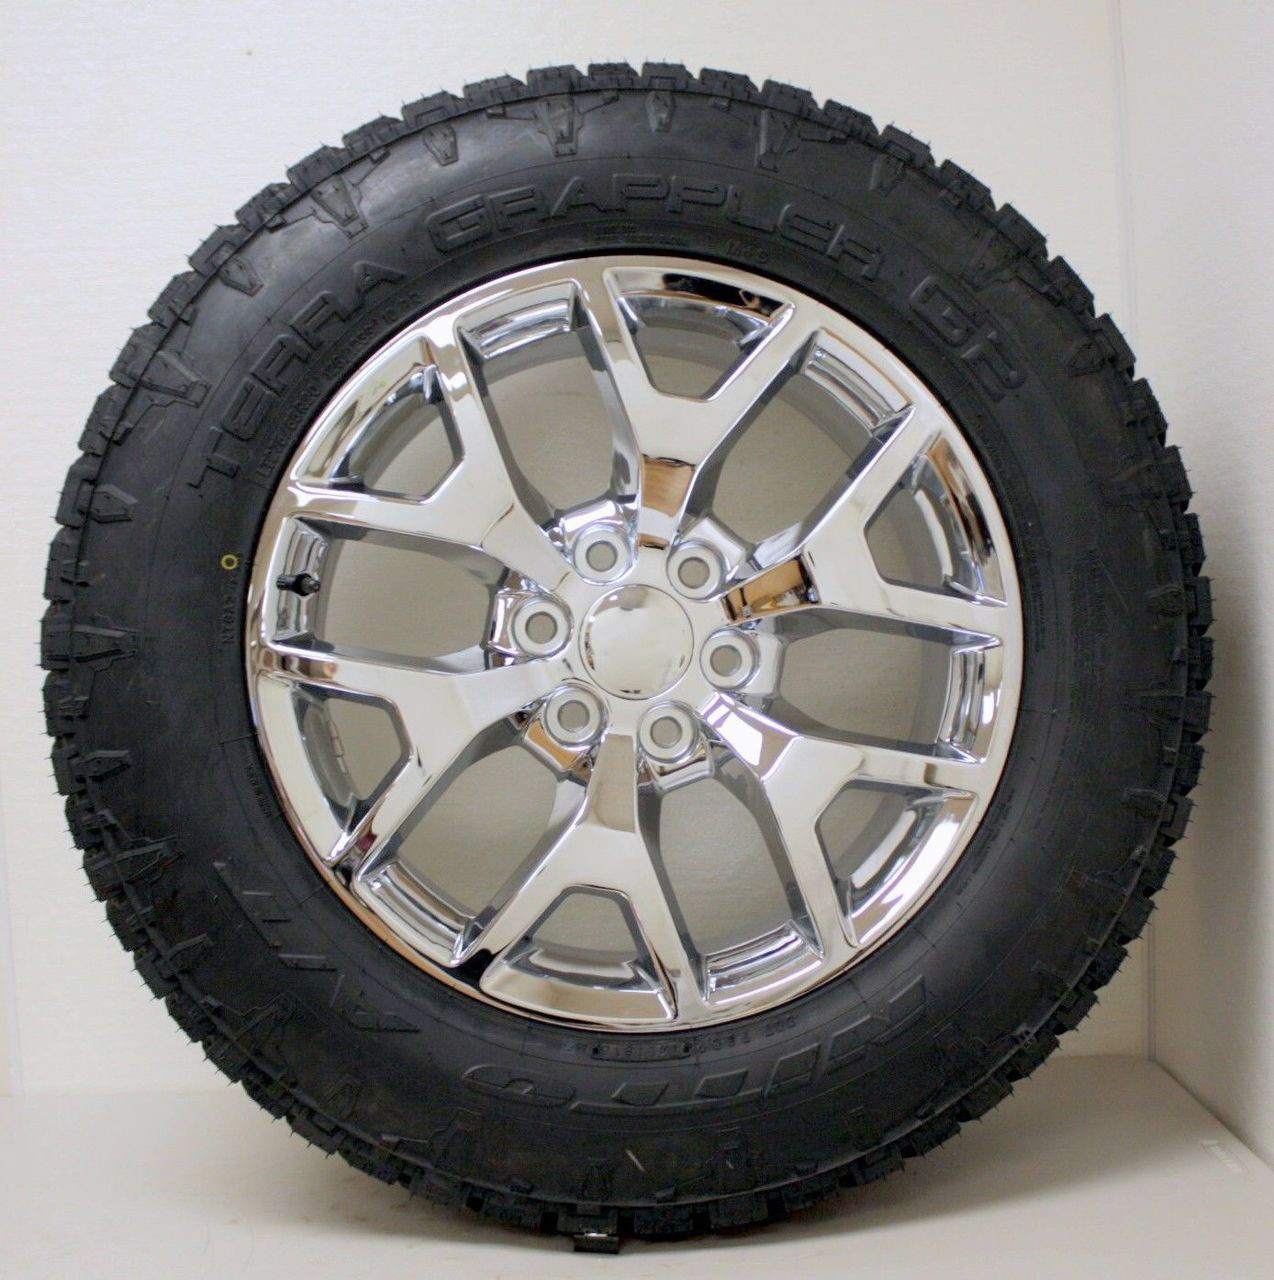 "Chrome 20"" Honeycomb Wheels with Nitto A/T Tires for Chevy Silverado, Tahoe, Suburban - New Set of 4"